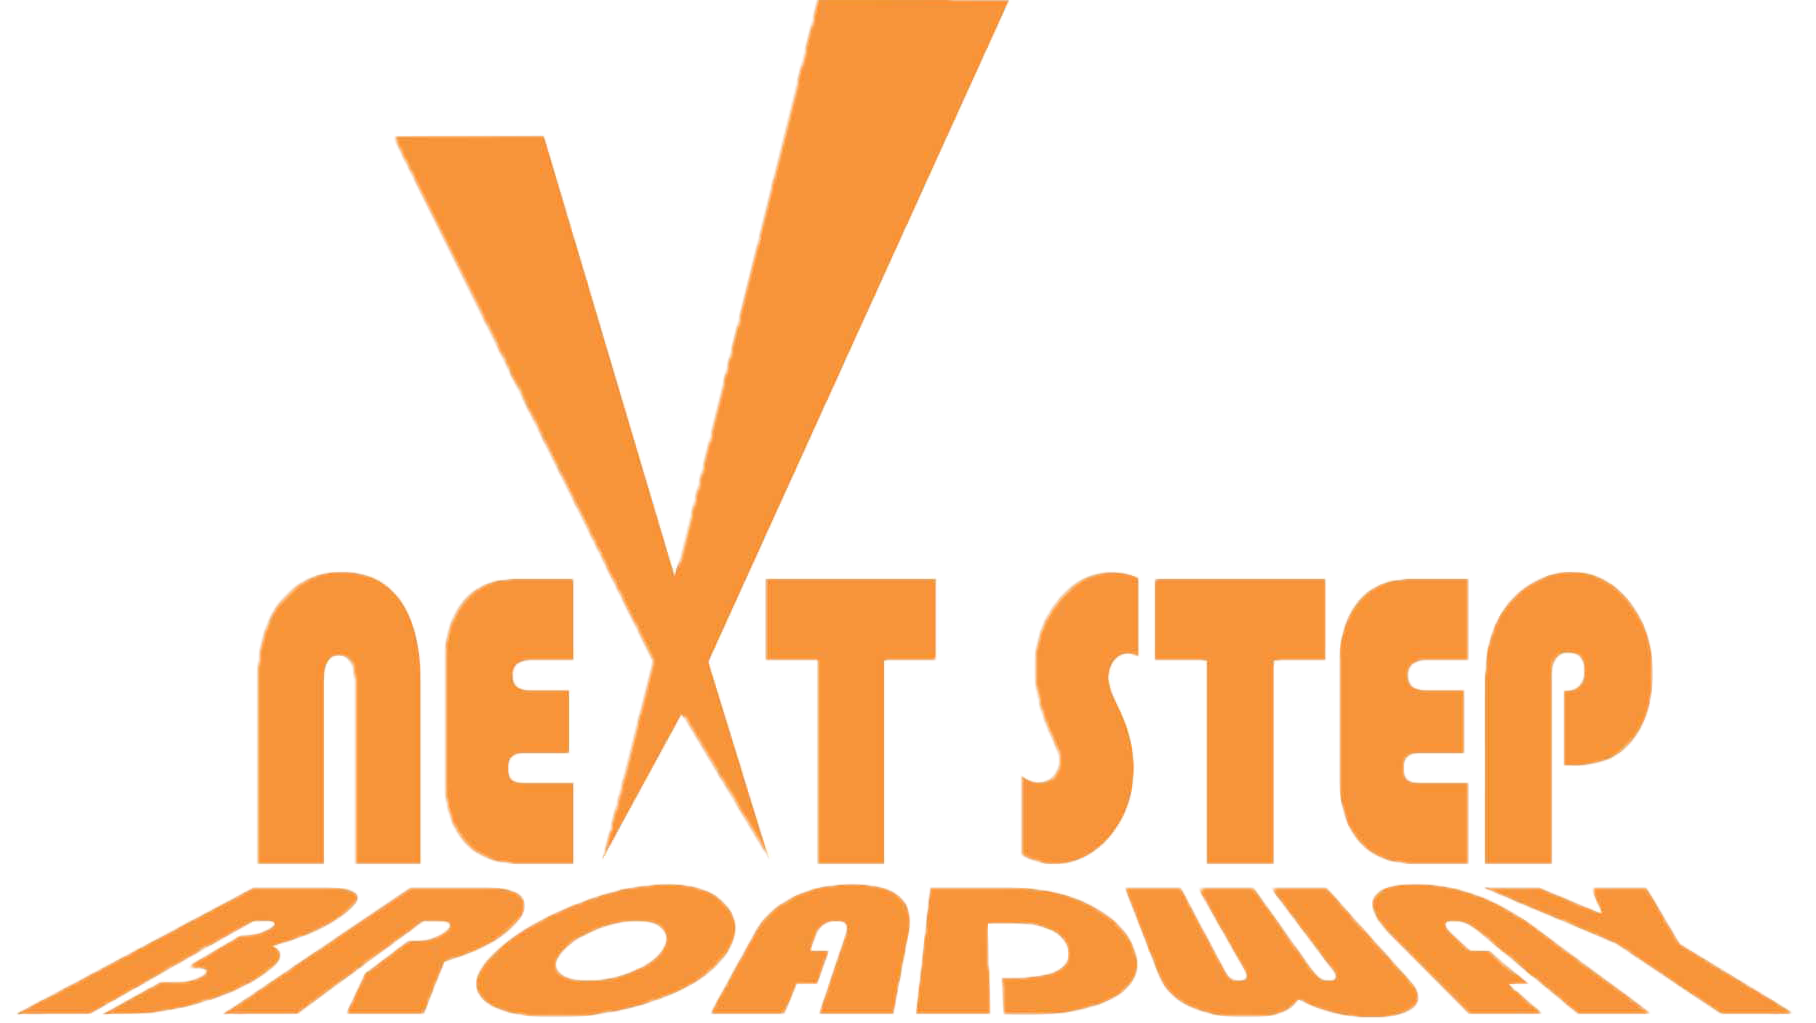 Next Step Broadway